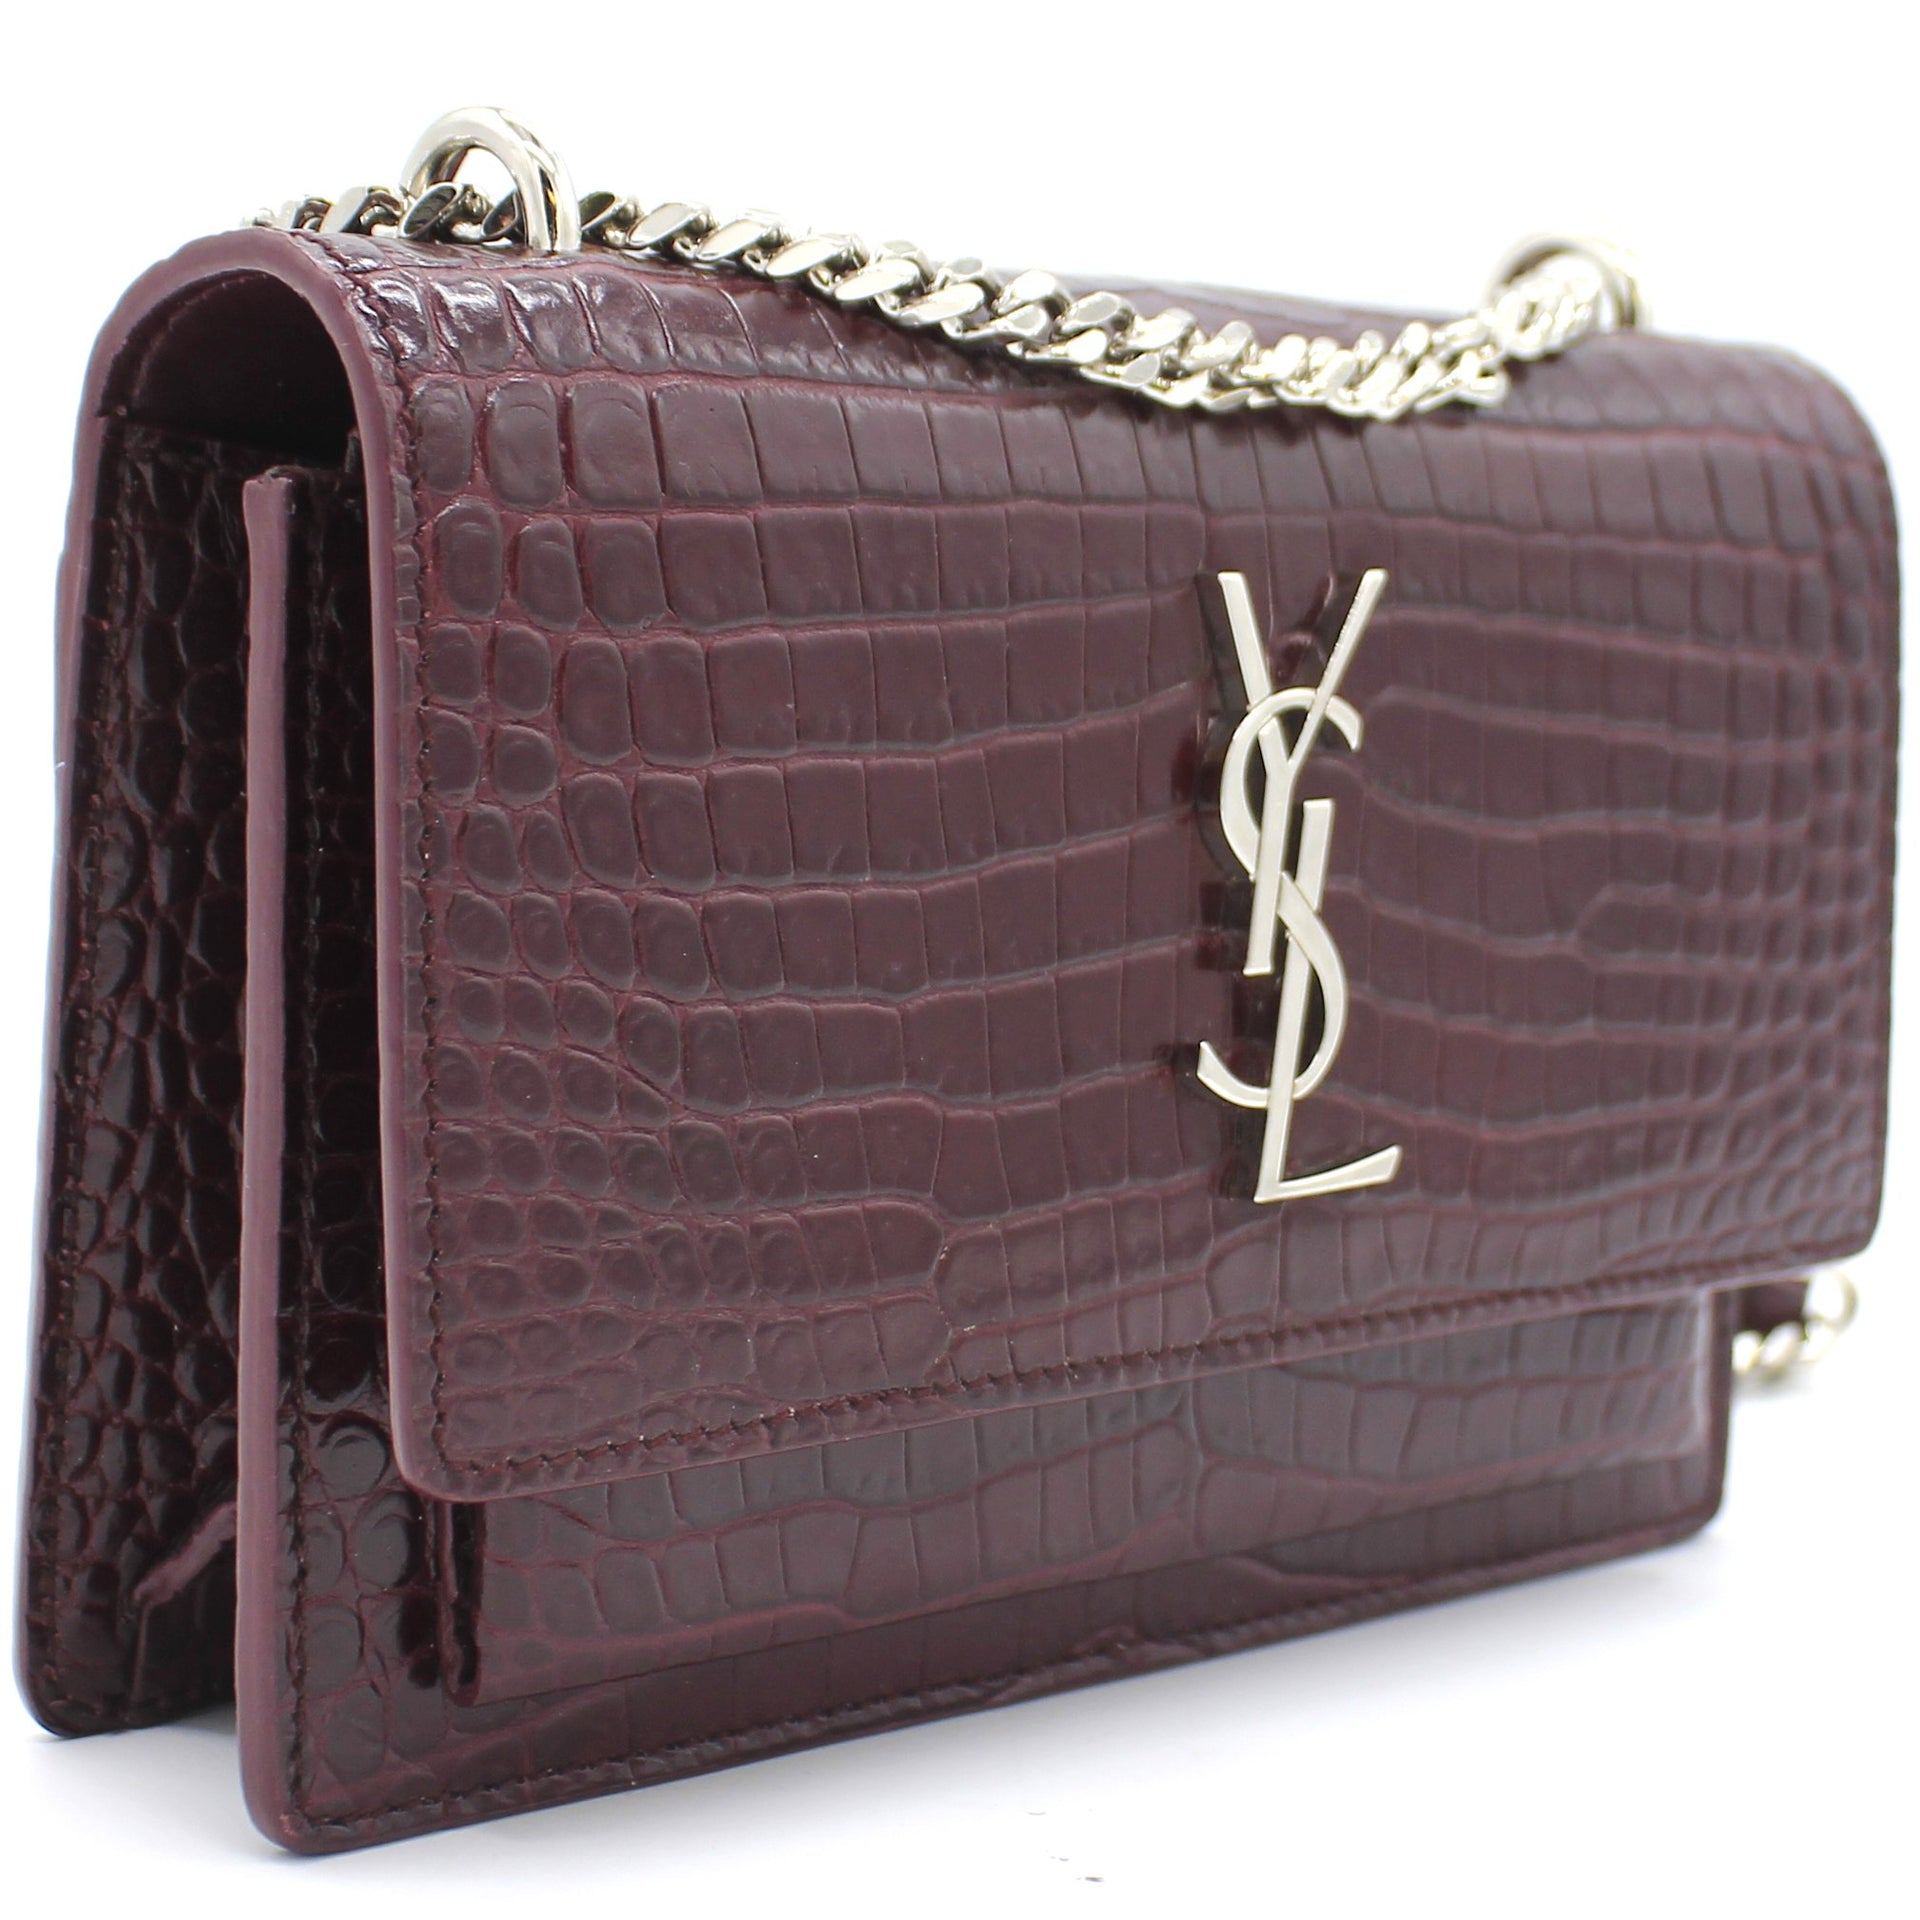 Sunset Monogram Leather Chain Wallet